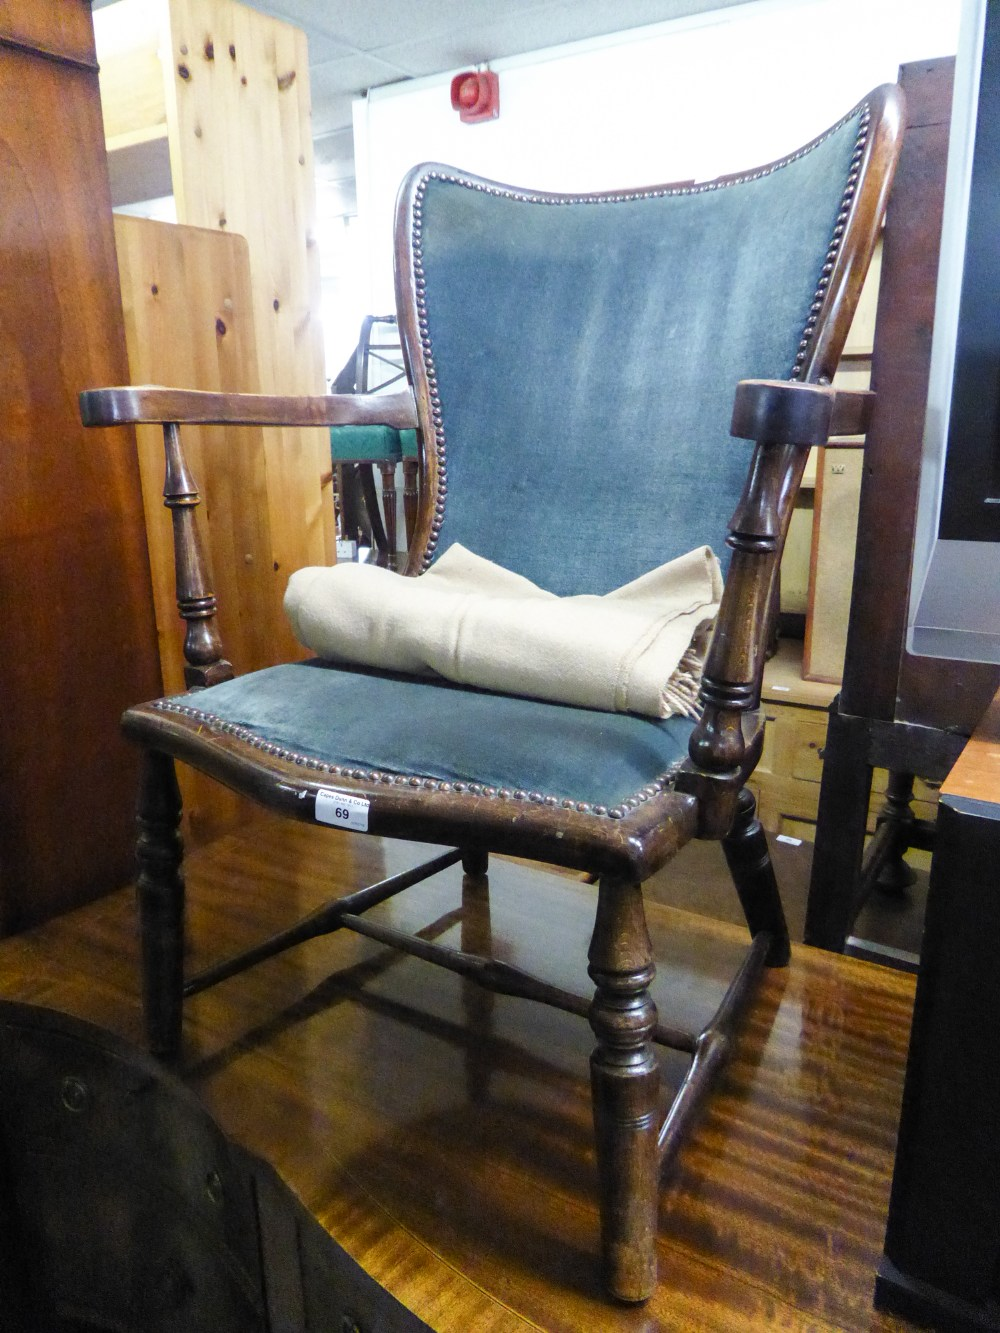 Lot 69 - A SMALL HARDWOOD, EARLY 20TH CENTURY NURSING ARMCHAIR WITH UPHOLSTERED BACK AND SEAT COVERED IN